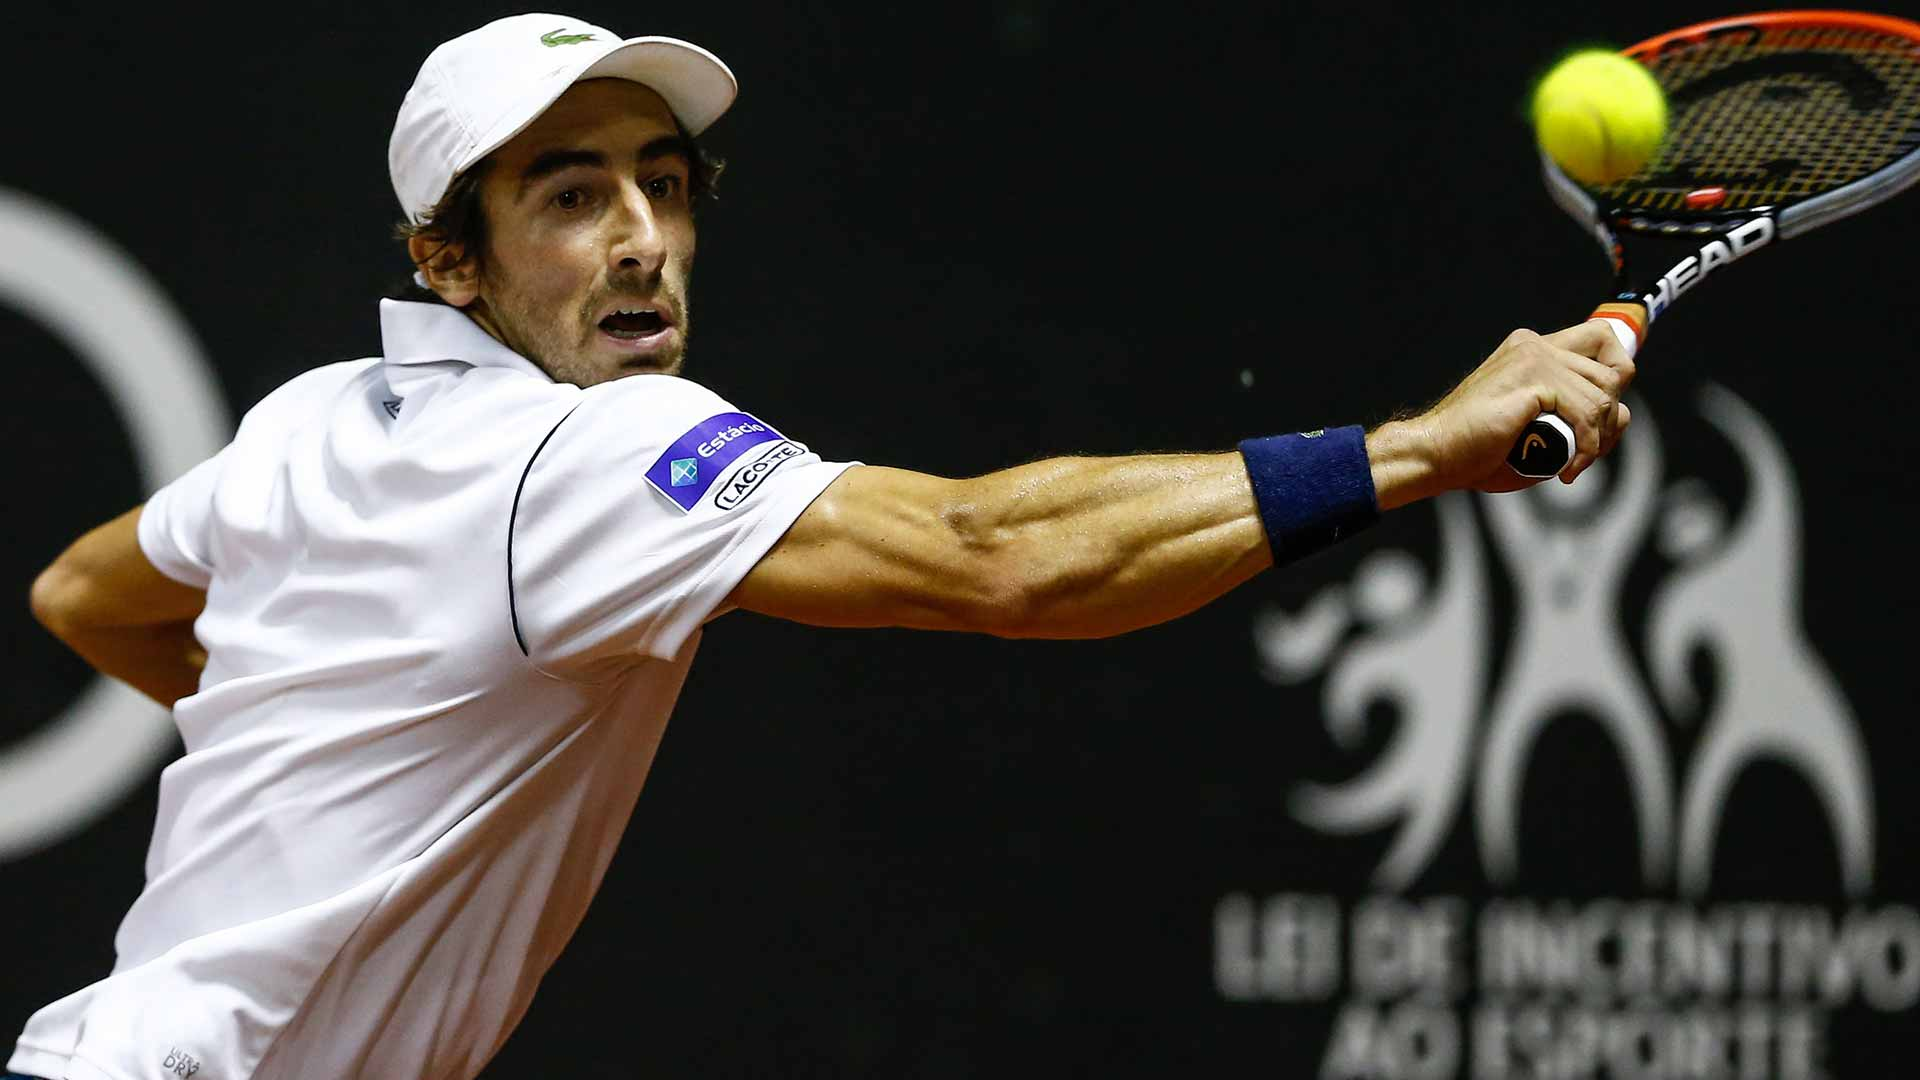 Pablo Cuevas extends his run of success against left-handers in Sao Paulo.